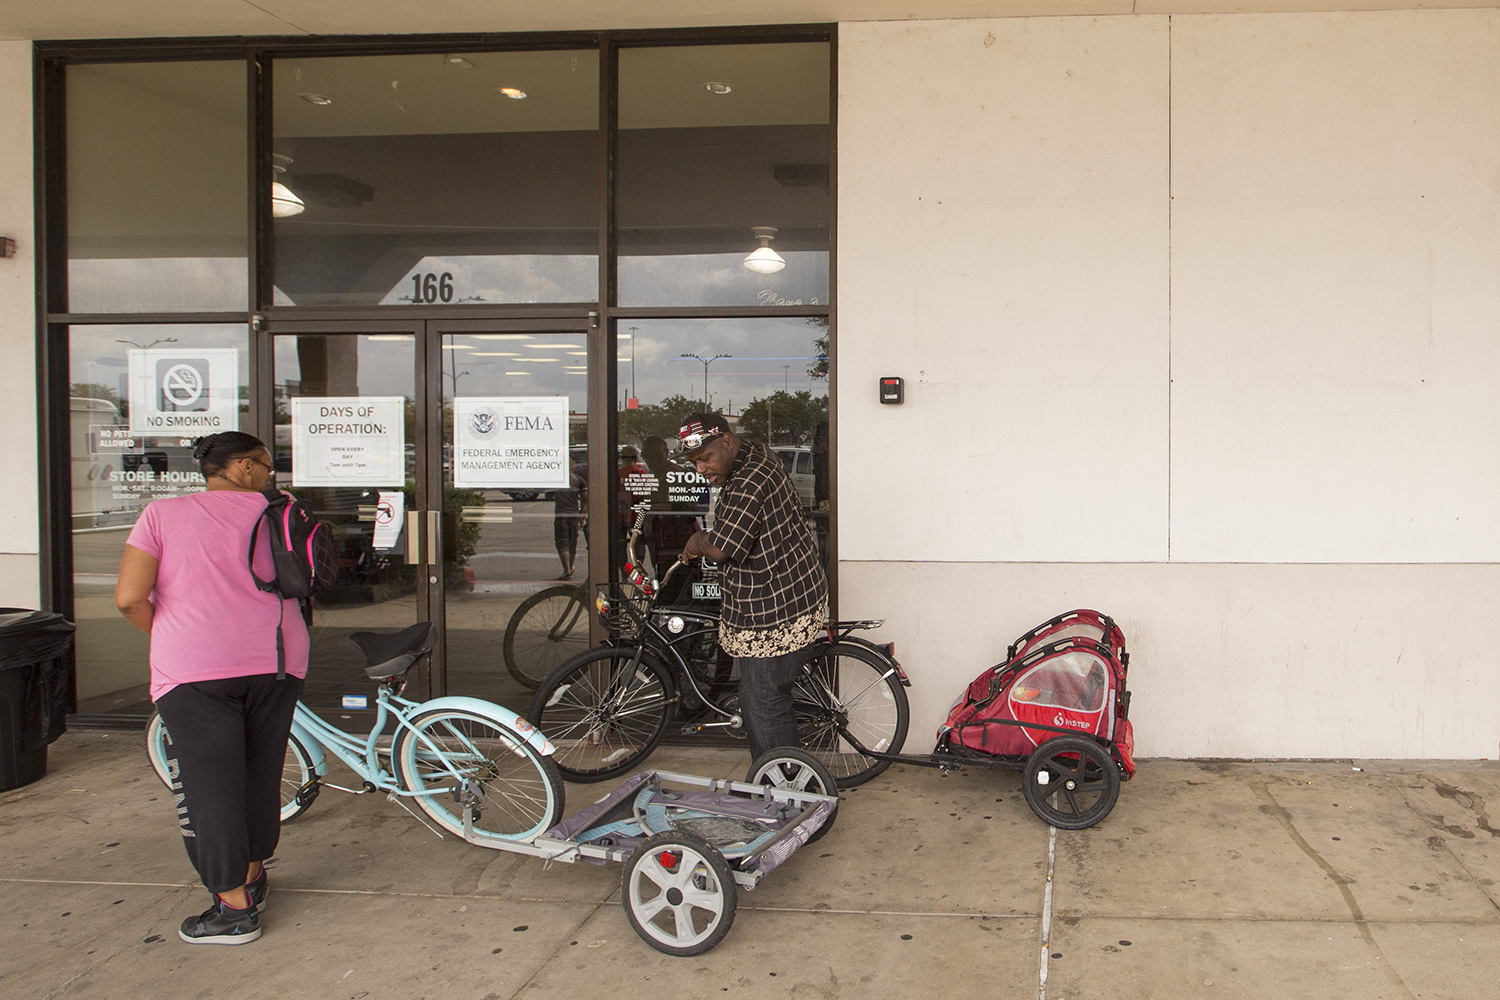 Crystal and Ollie Green rode their bikes to the Beaumont disaster recovery center, where they are seeking help after their apartment flooded.